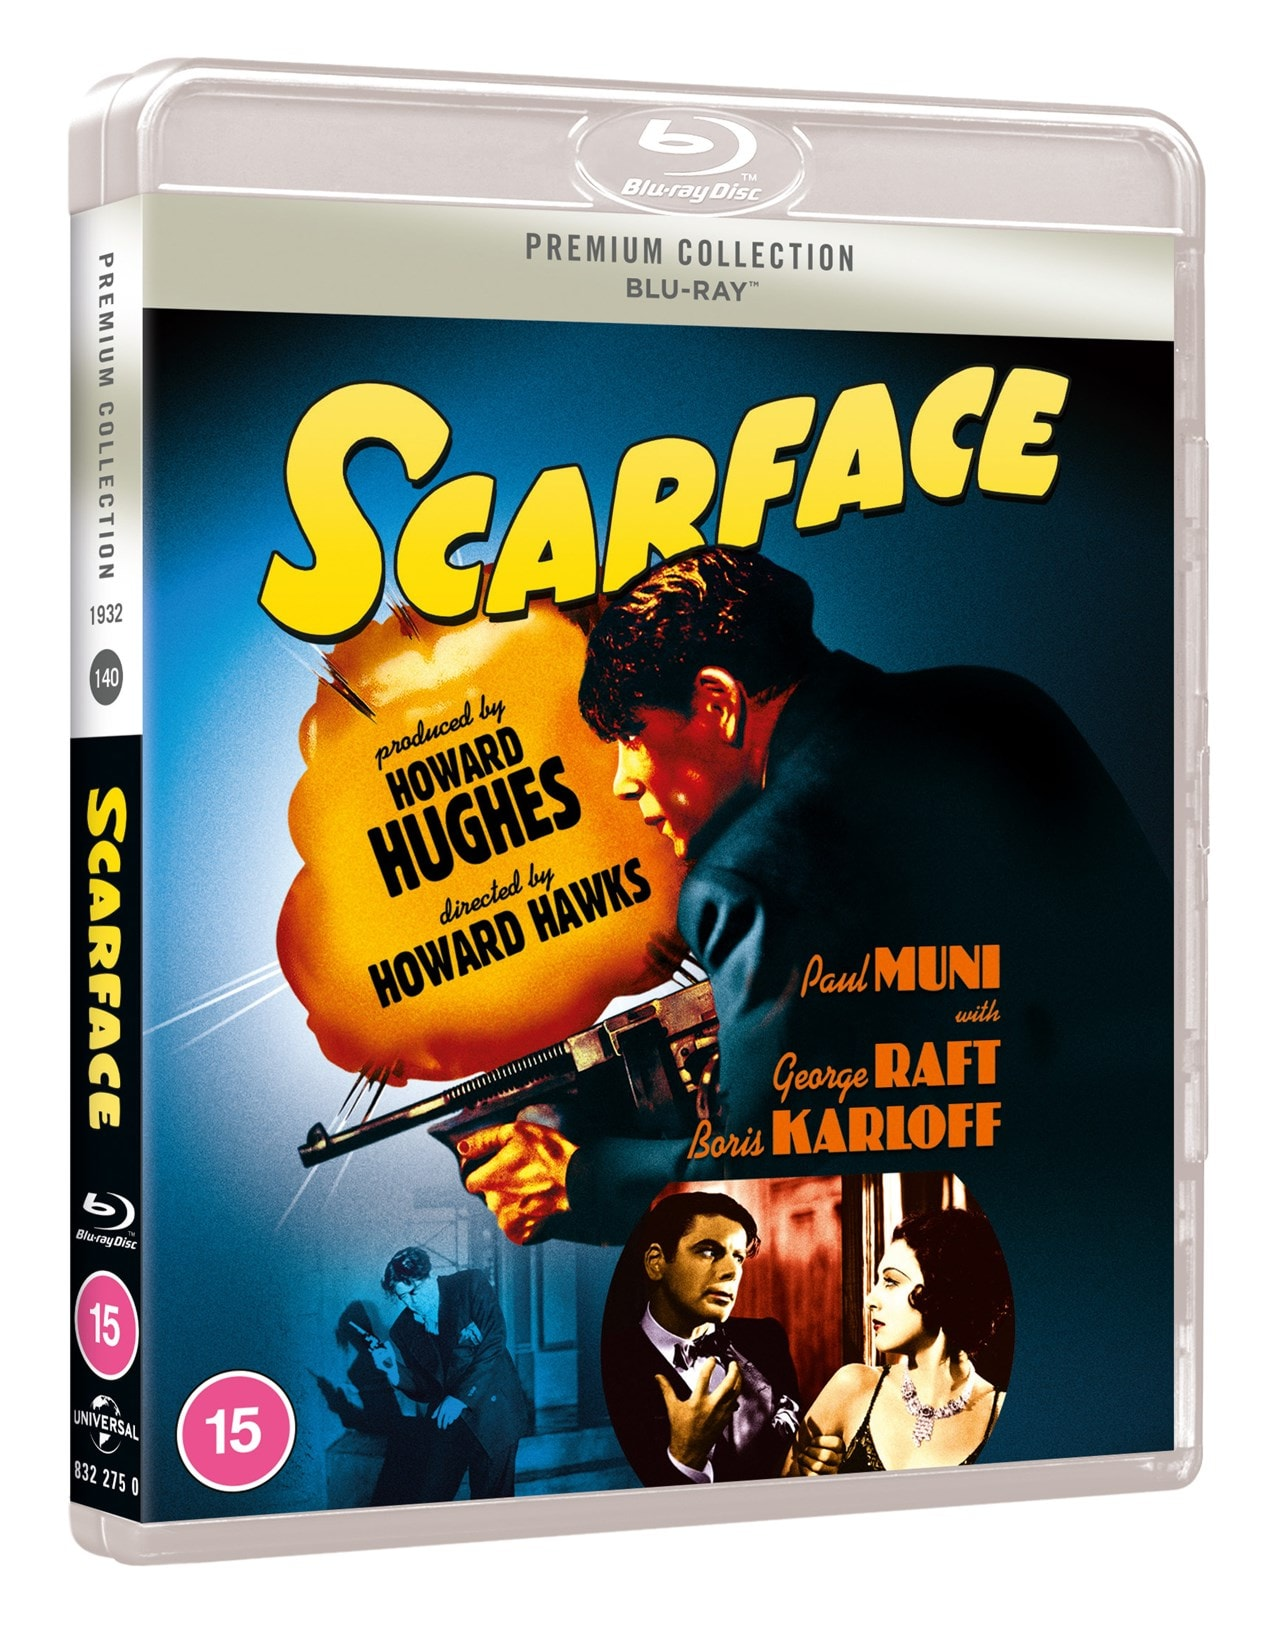 Scarface (hmv Exclusive) - The Premium Collection - 3